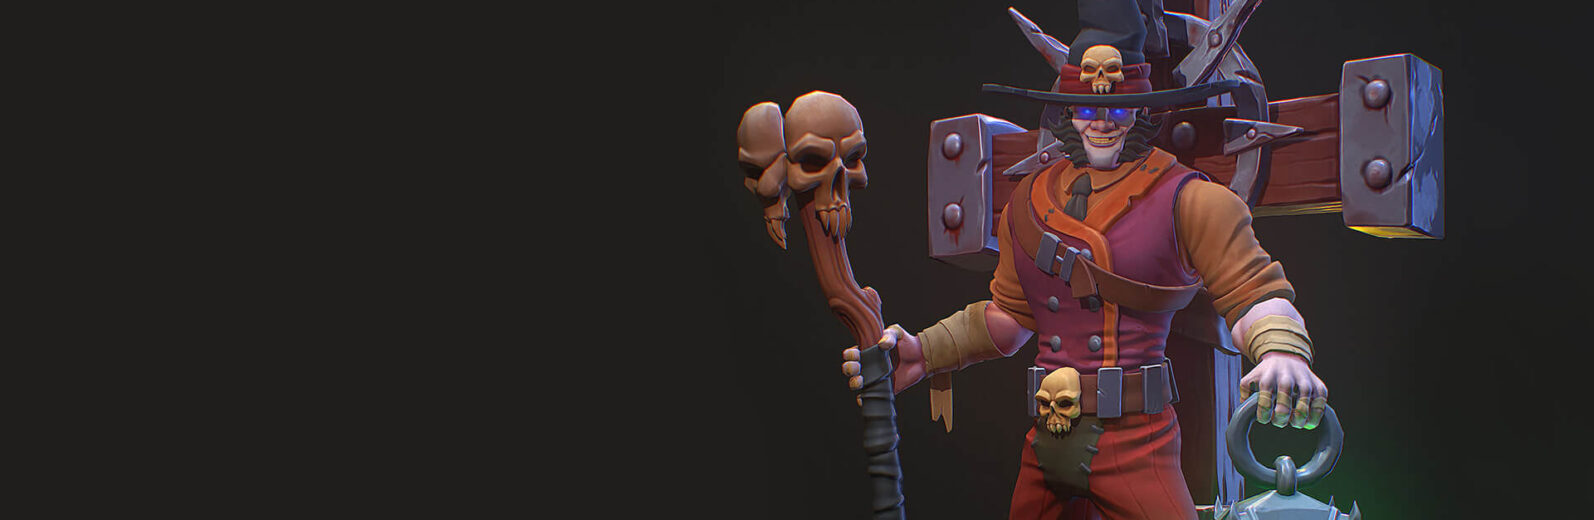 How to design a 3d character from scratch to a final game model